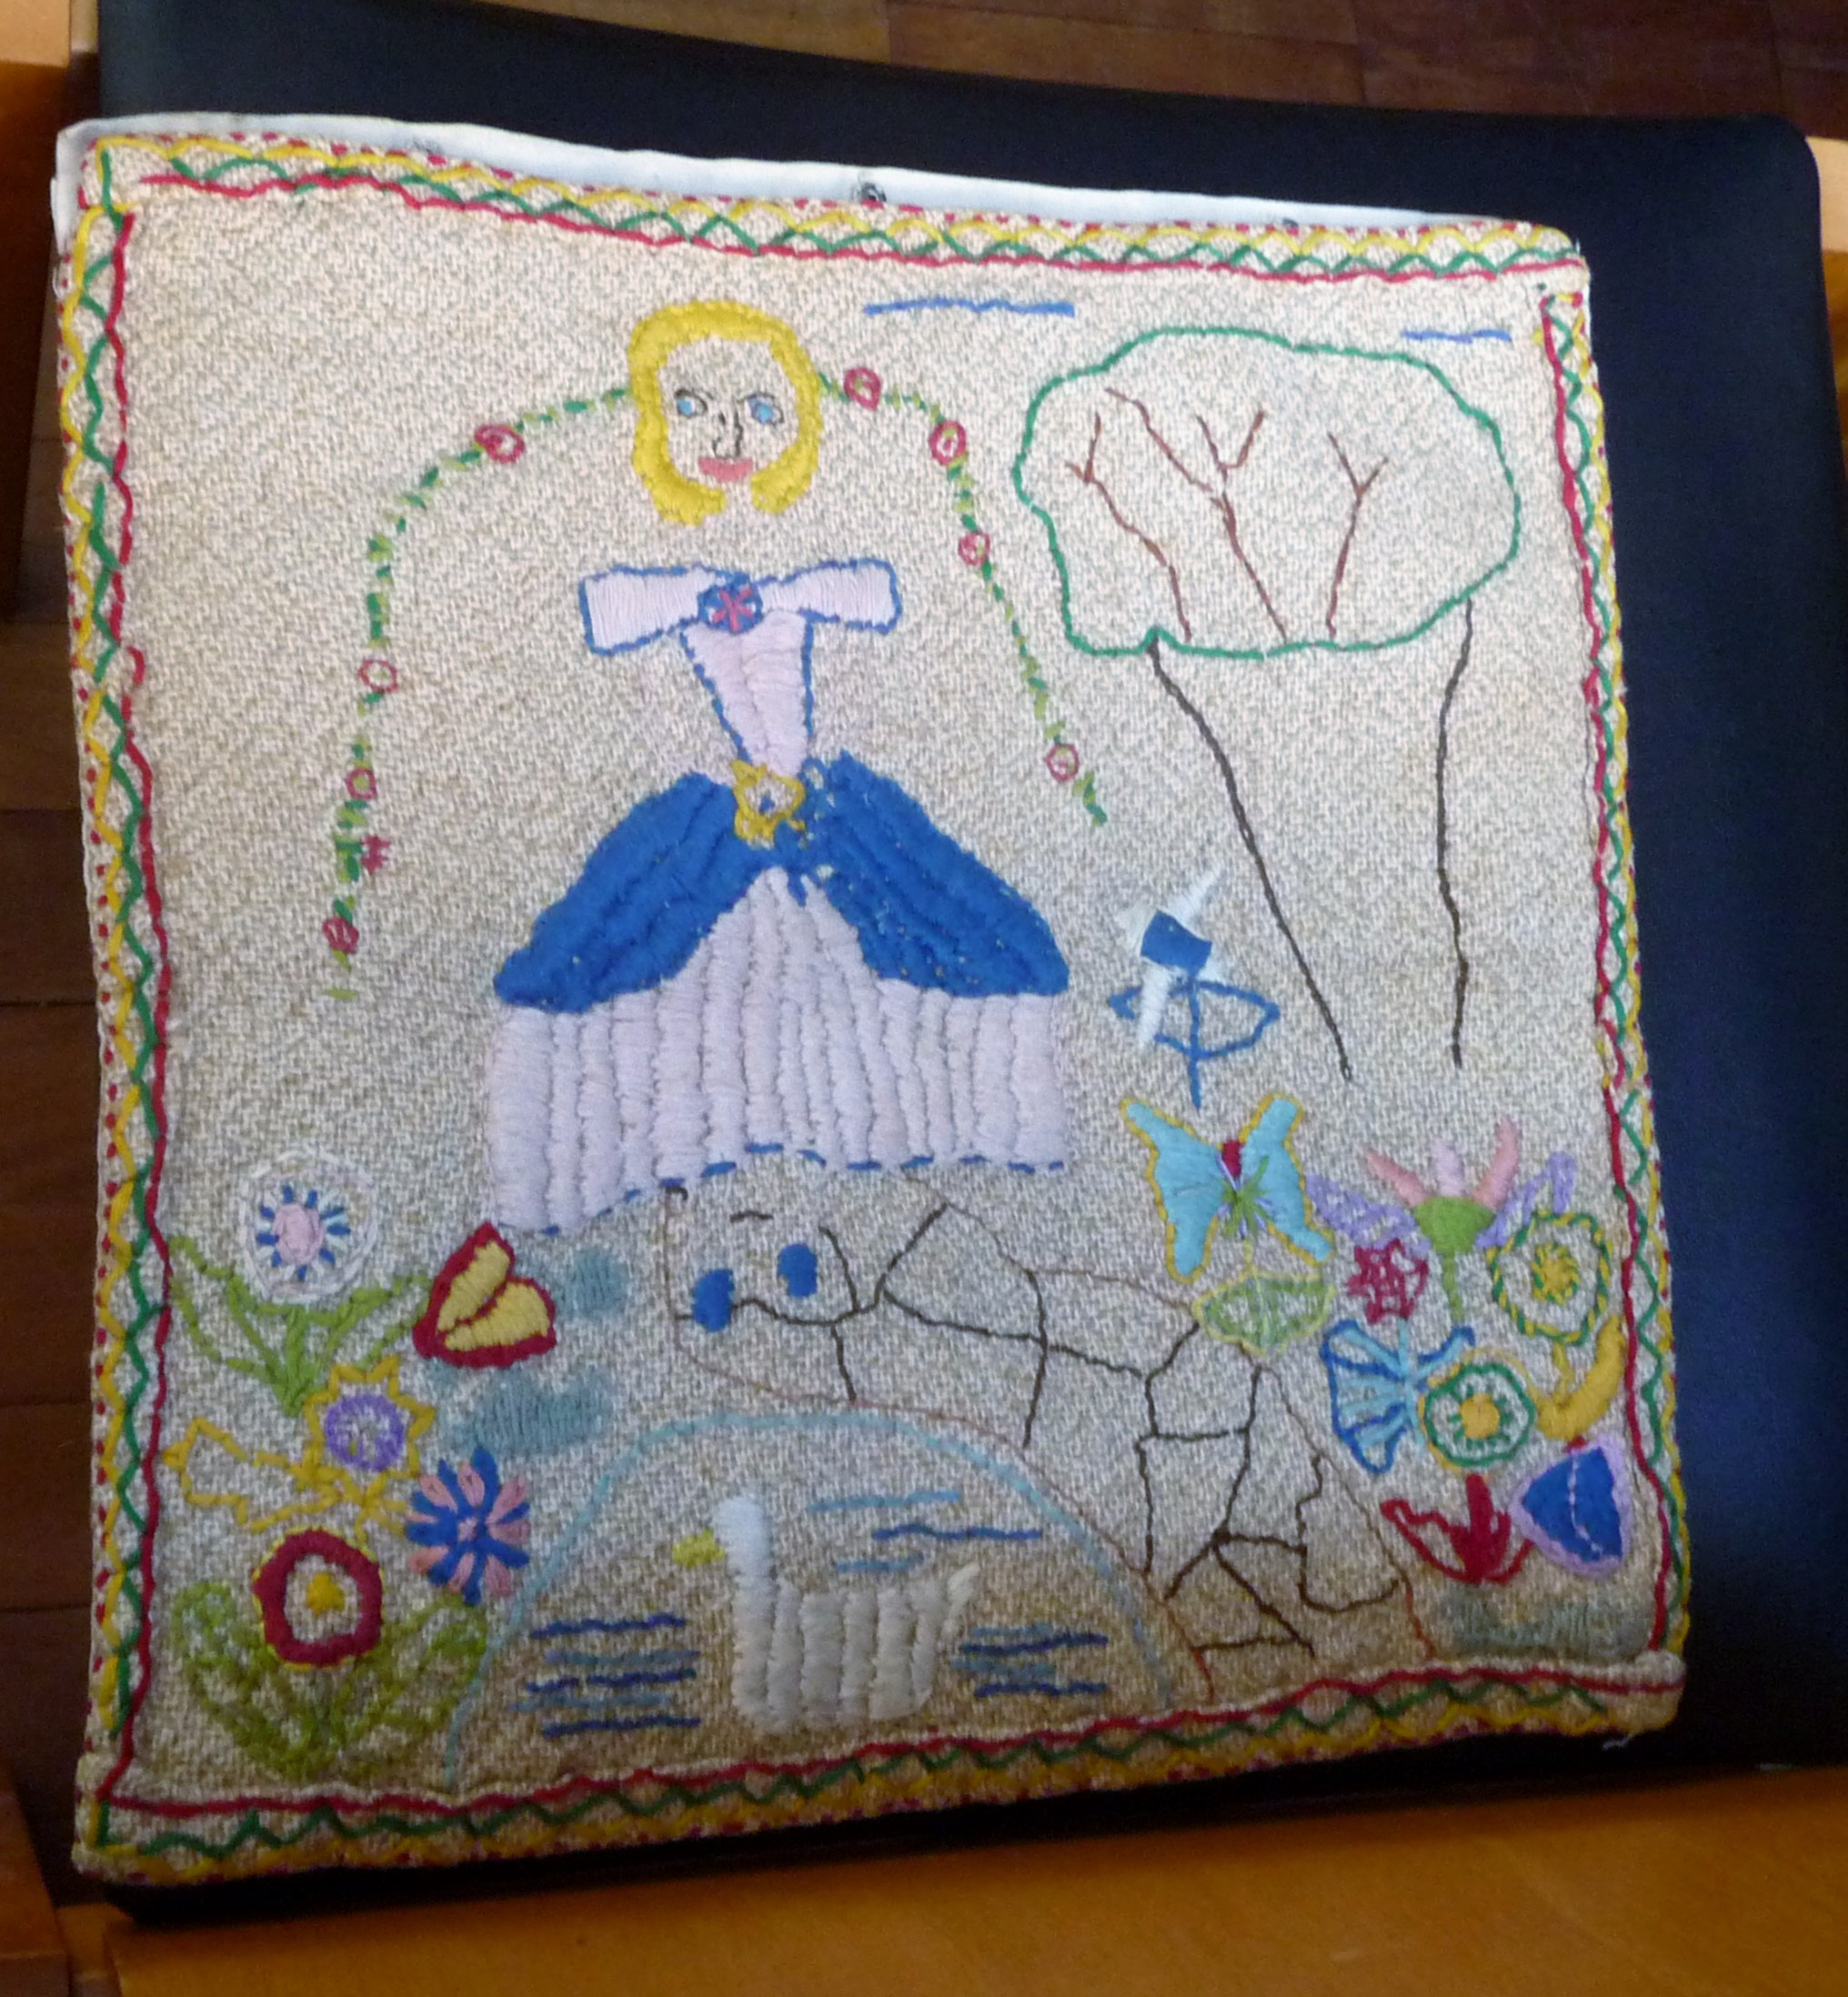 embroidery by Elsie Watkins, made at school